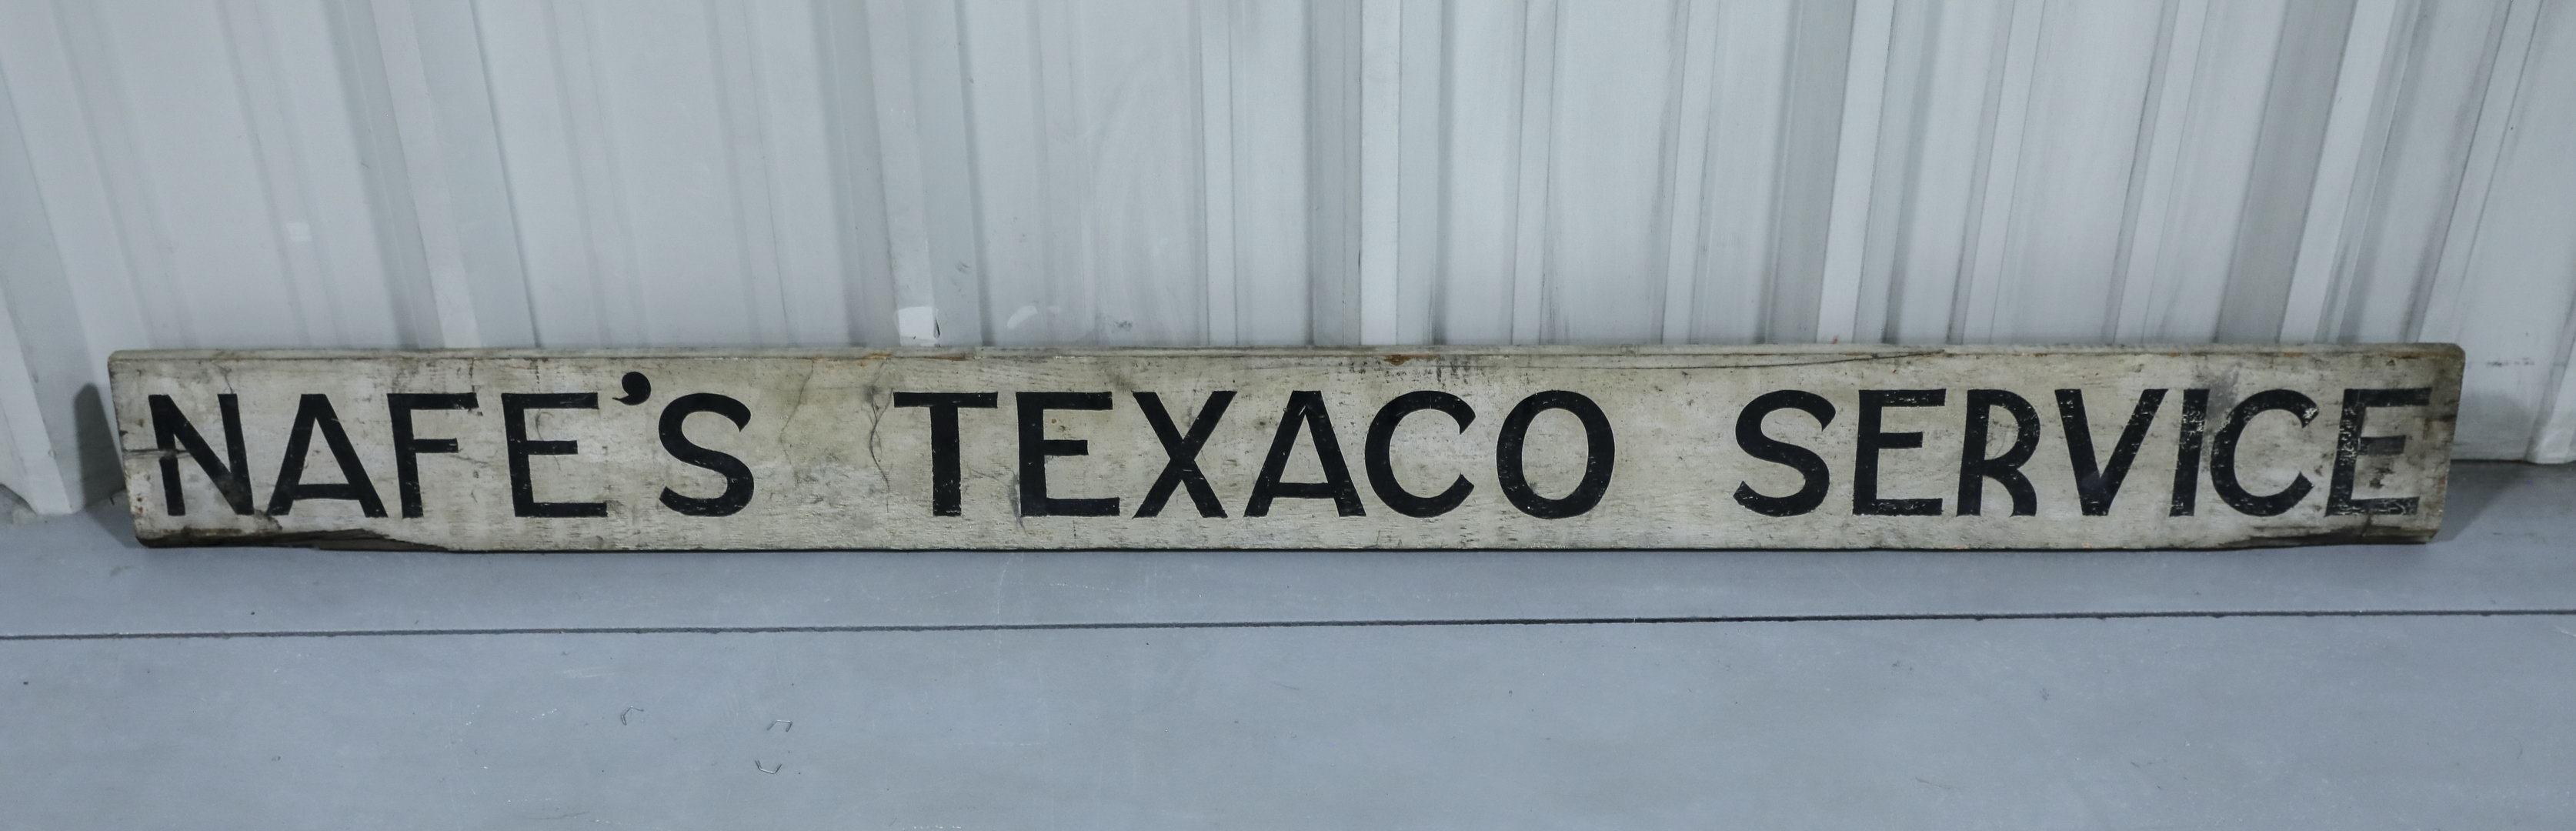 Nafe's Texaco Service DS Painted Wood Sign